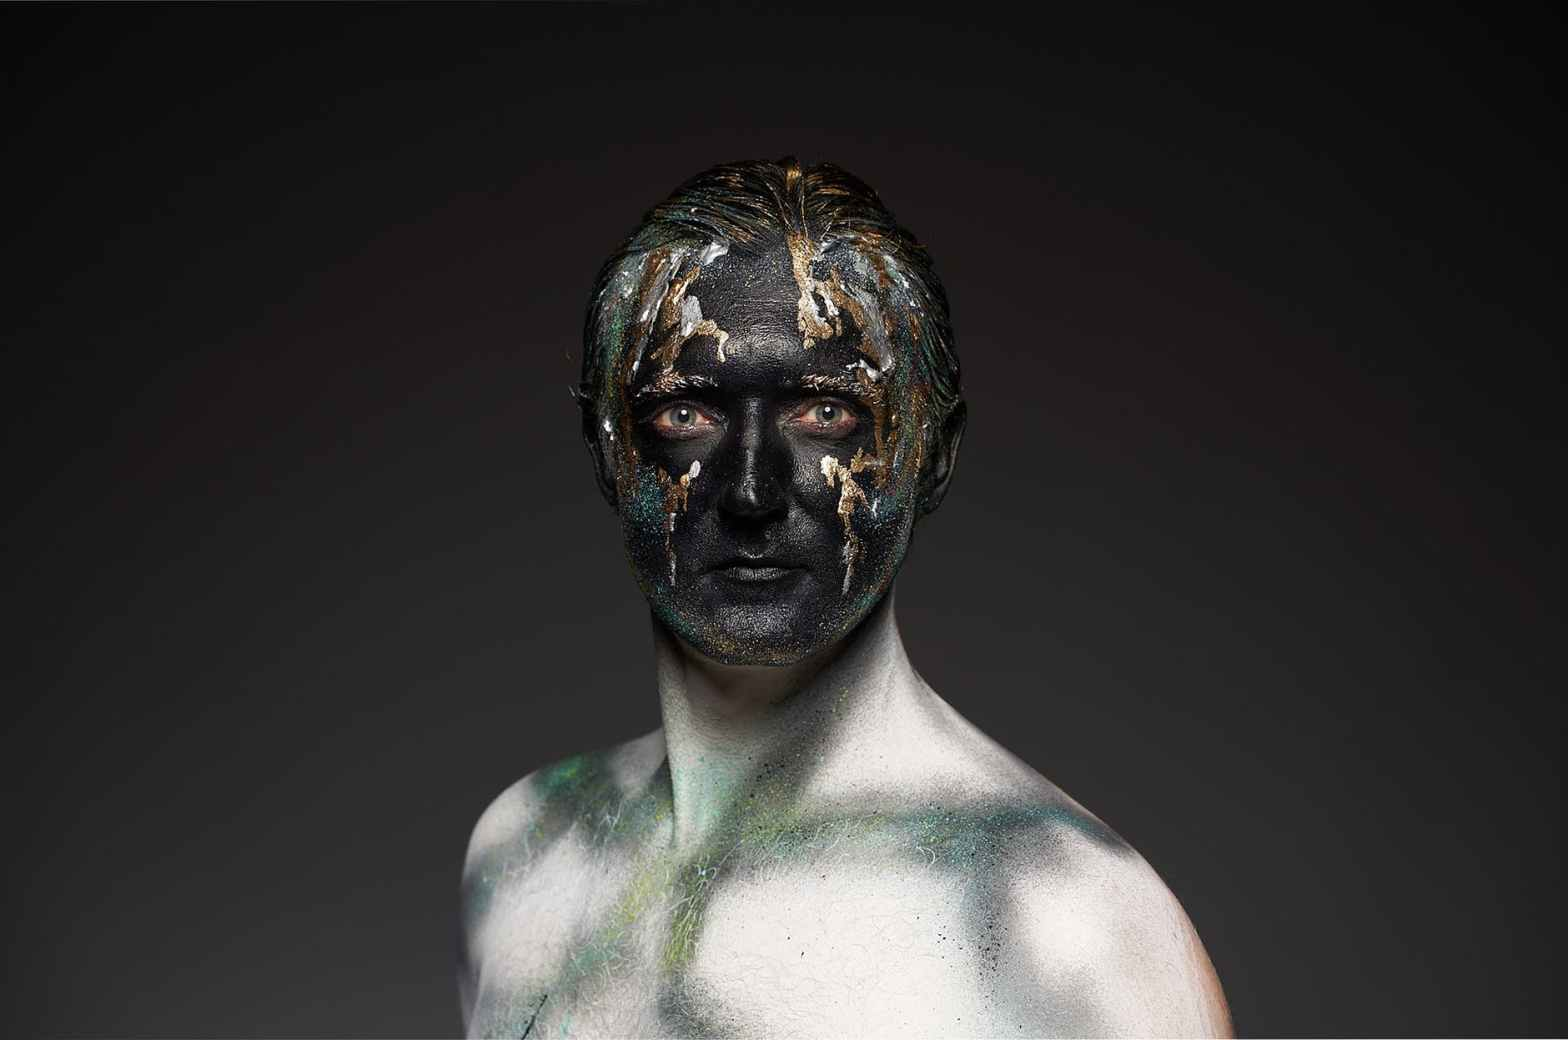 man with black and gold body art